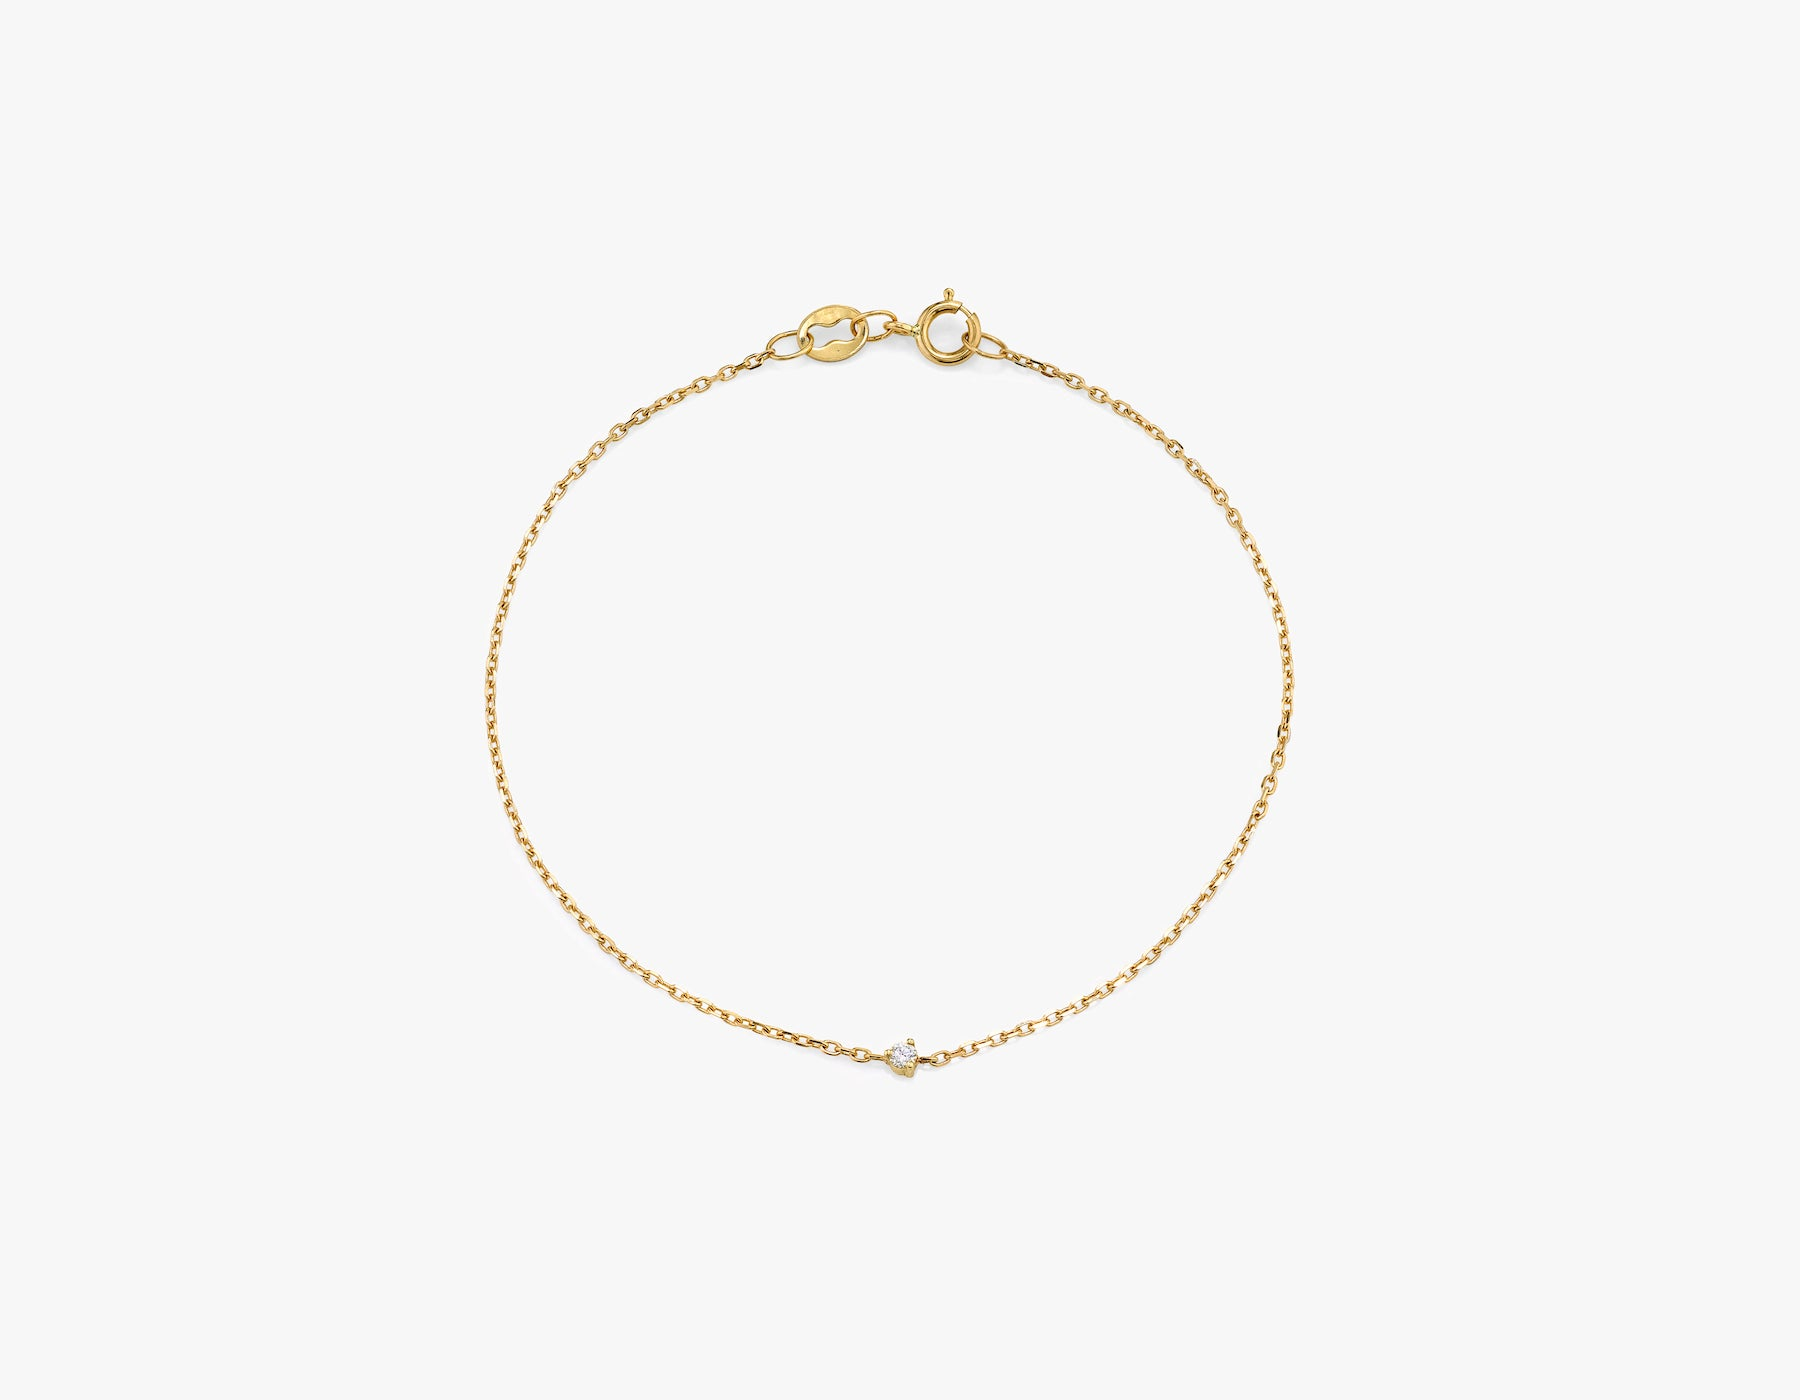 Vrai 14k Solid gold dainty Tiny Diamond Bracelet with spring ring clasp, 14K Yellow Gold